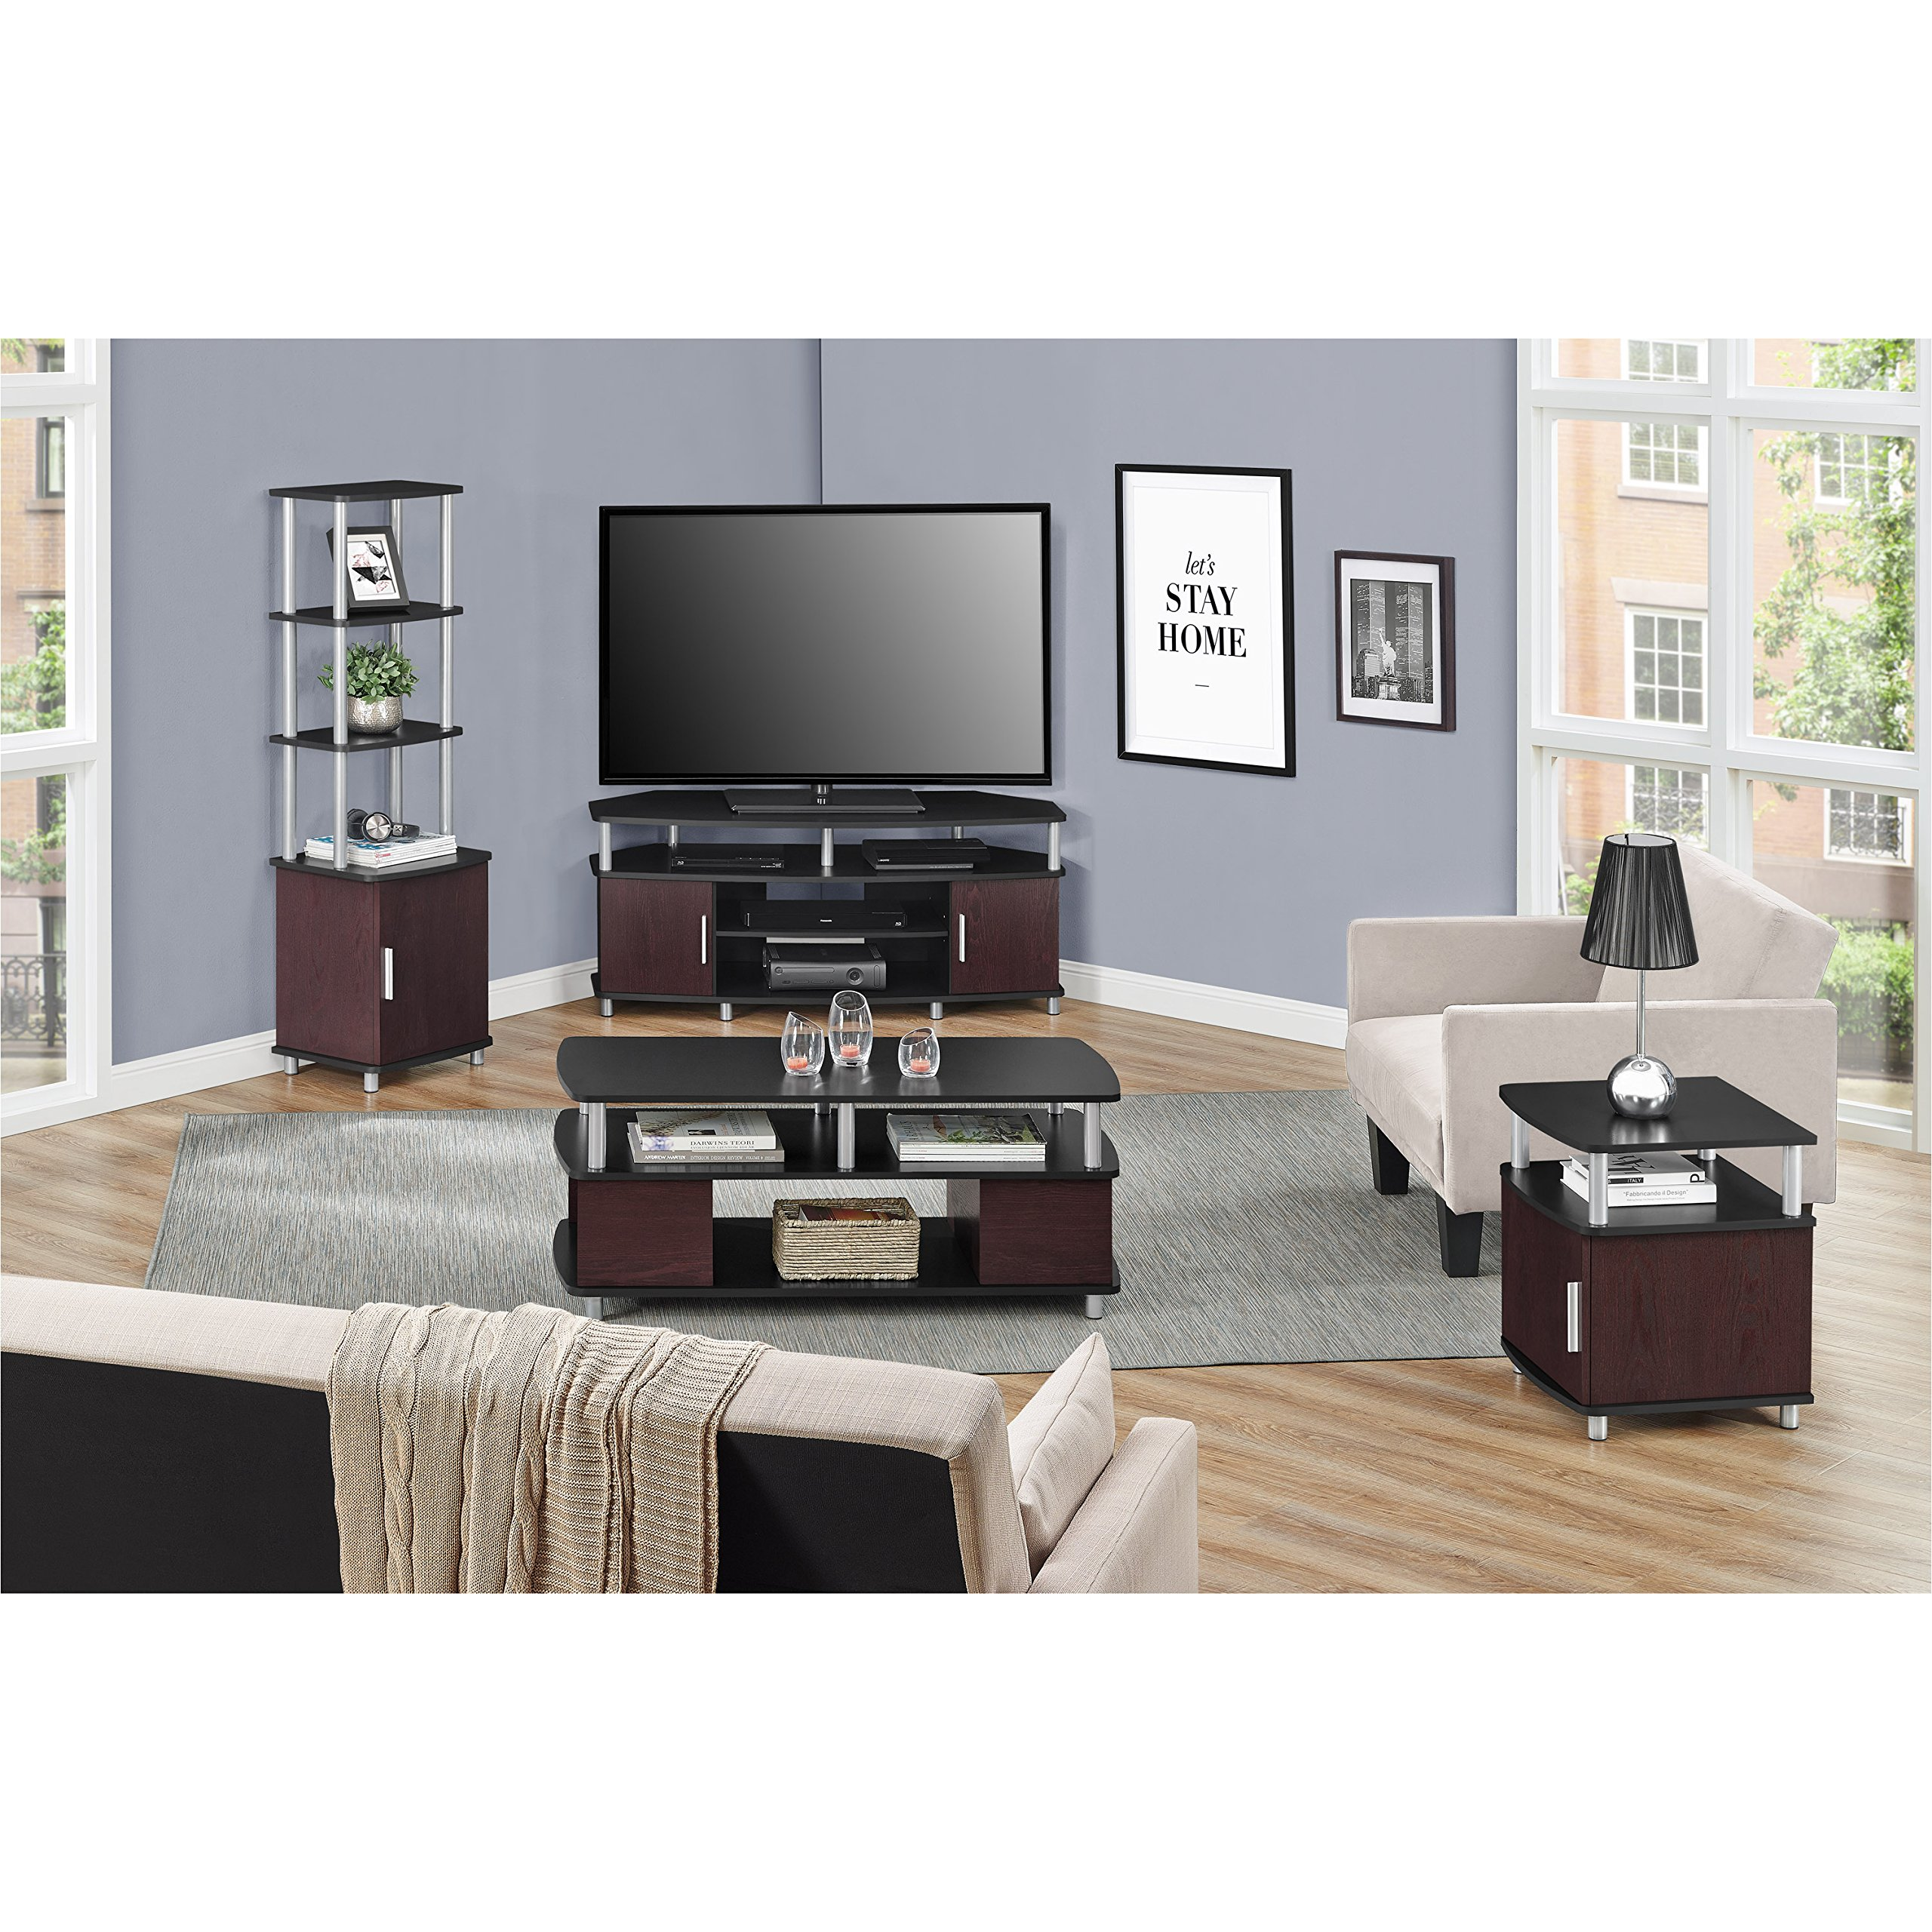 Ameriwood Home Carson Corner TV Stand for TVs up to 50'', Black/Cherry